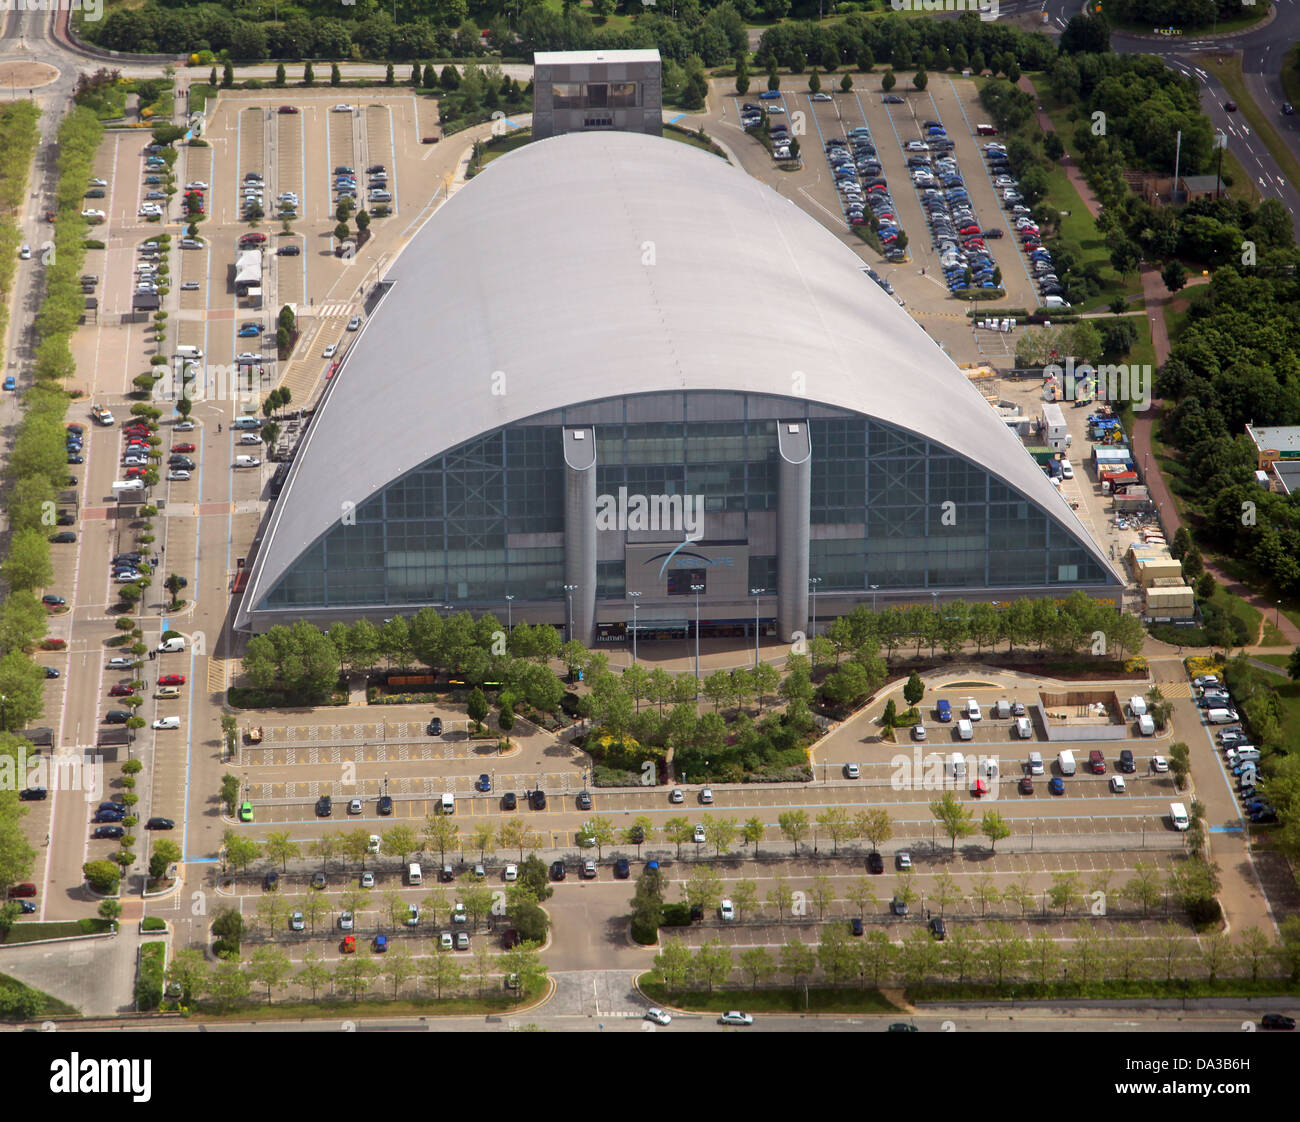 Great Aerial View Of Xscape Indoor Skiing Centre At Milton Keynes   Stock Image